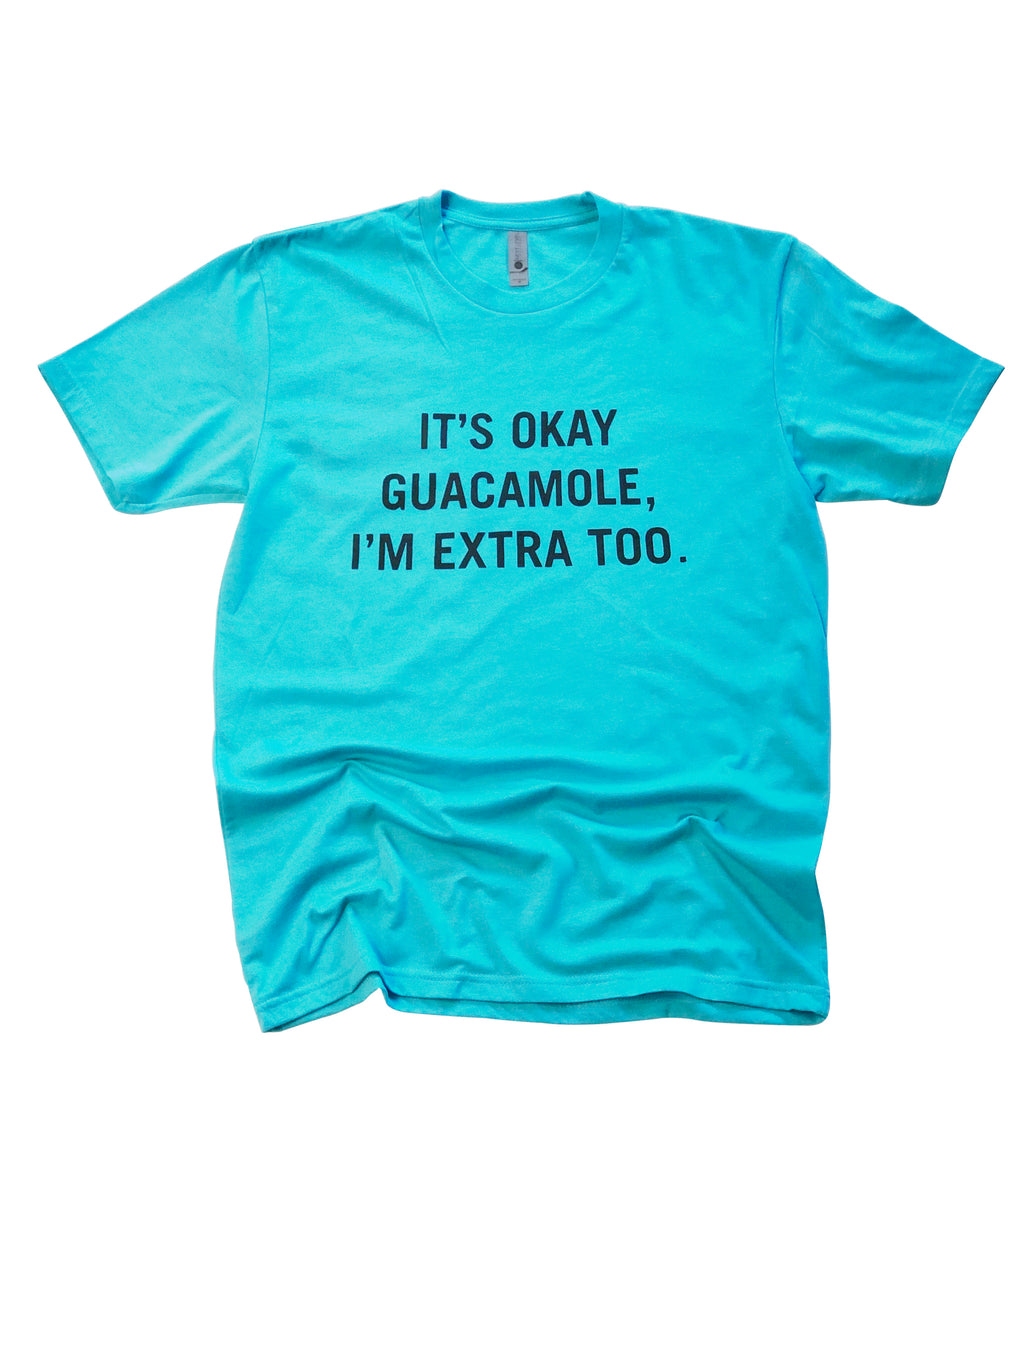 Extra Guac Shirt in Aqua - Trunk Series, LLC